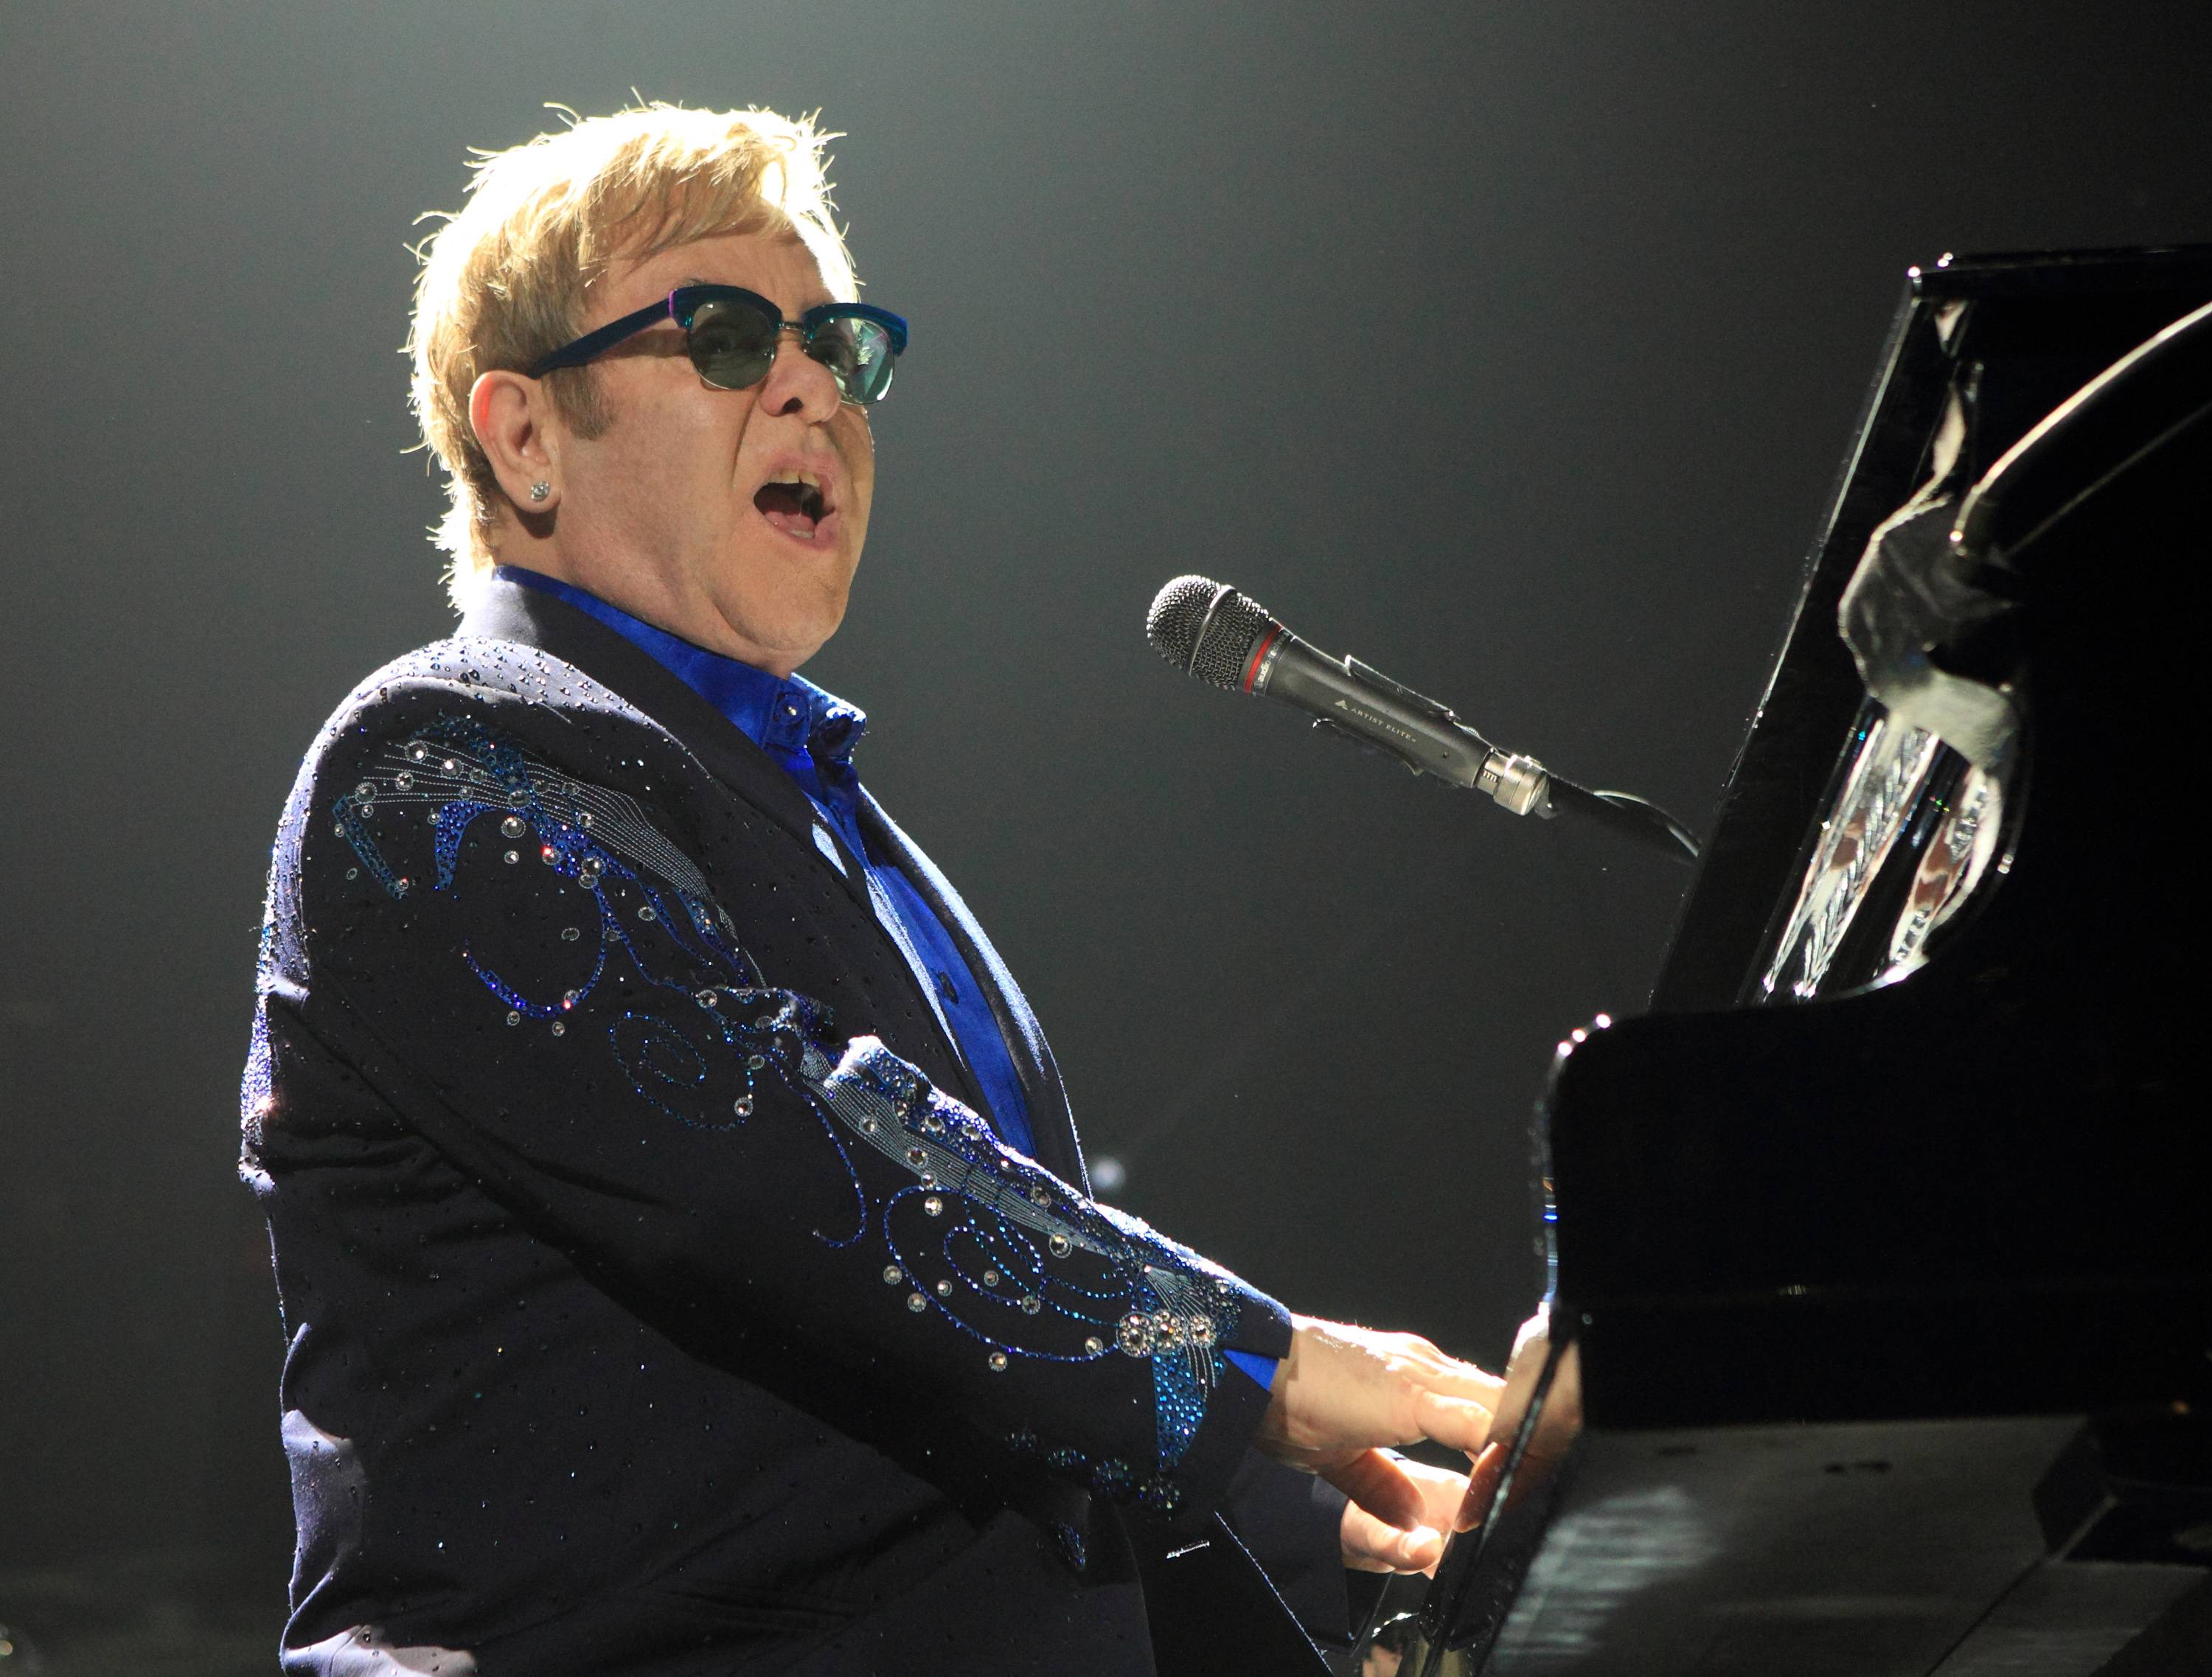 "Elton John performing in concert during his Diving Board Tour 2013 at the Verizon Center in Washington, D.C. Elton John released the 40th anniversary edition of his 1973 album, ""Goodbye Yellow Brick Road,"" on his 67th birthday."